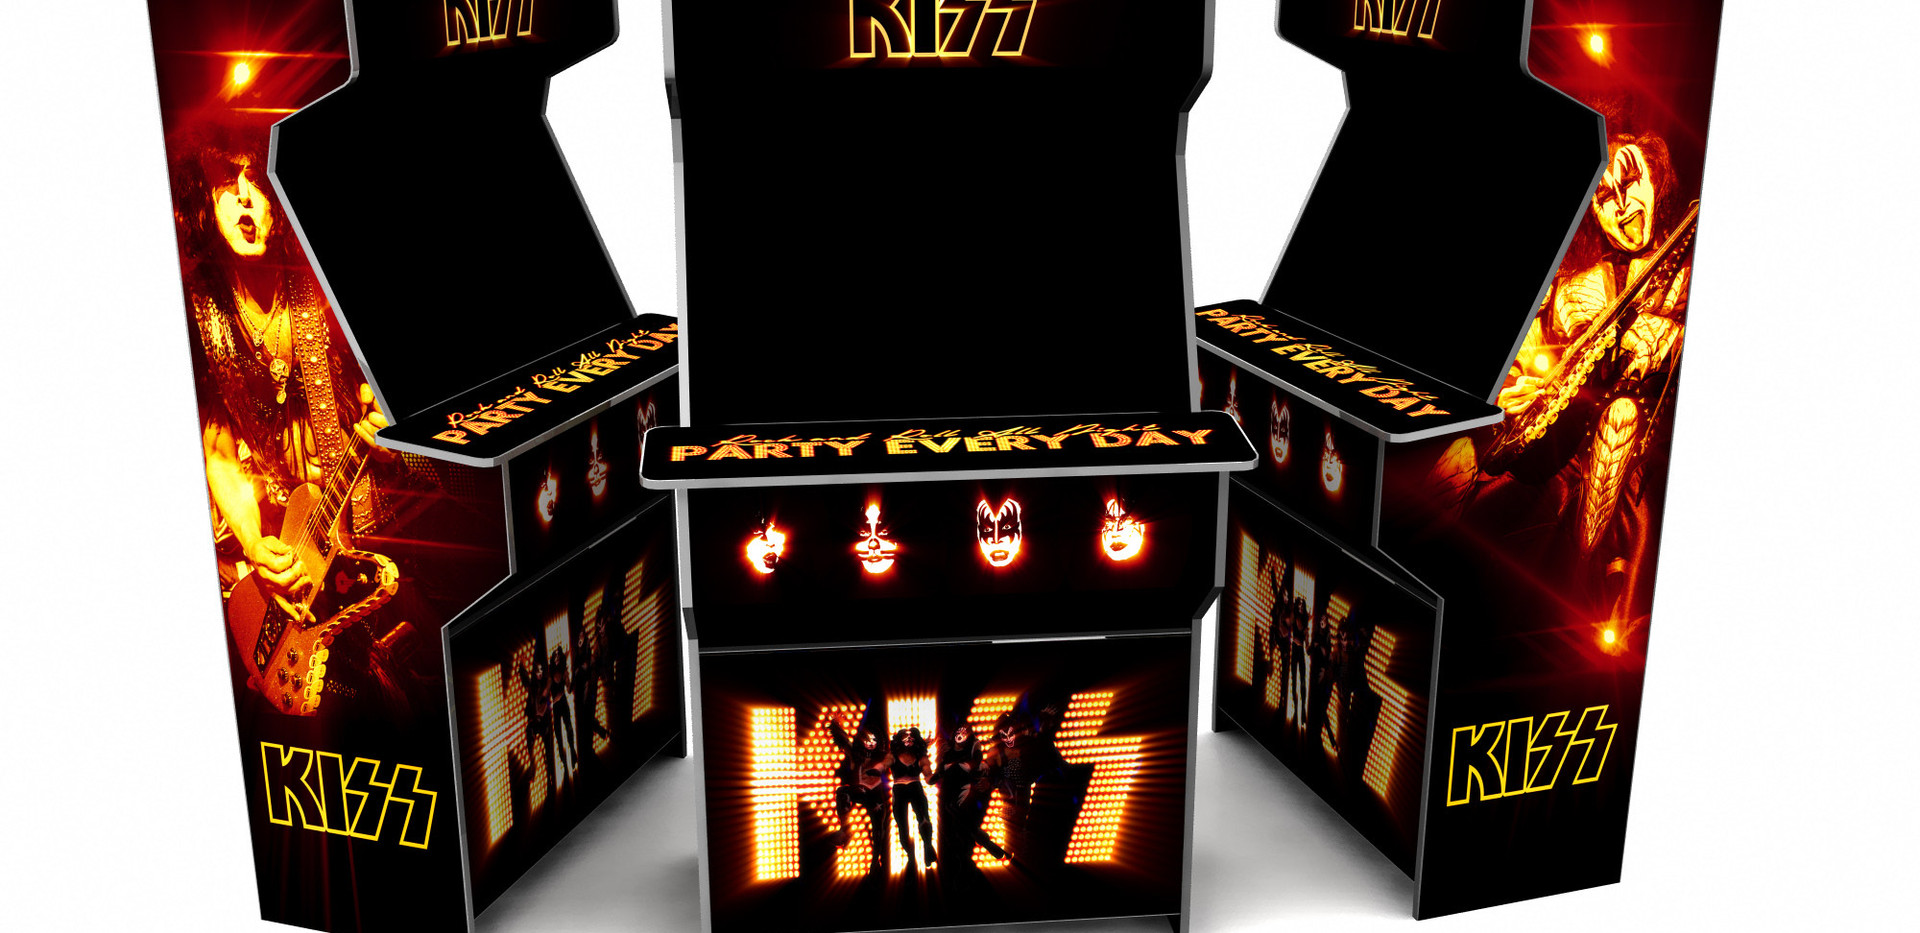 KISS Arcade machine